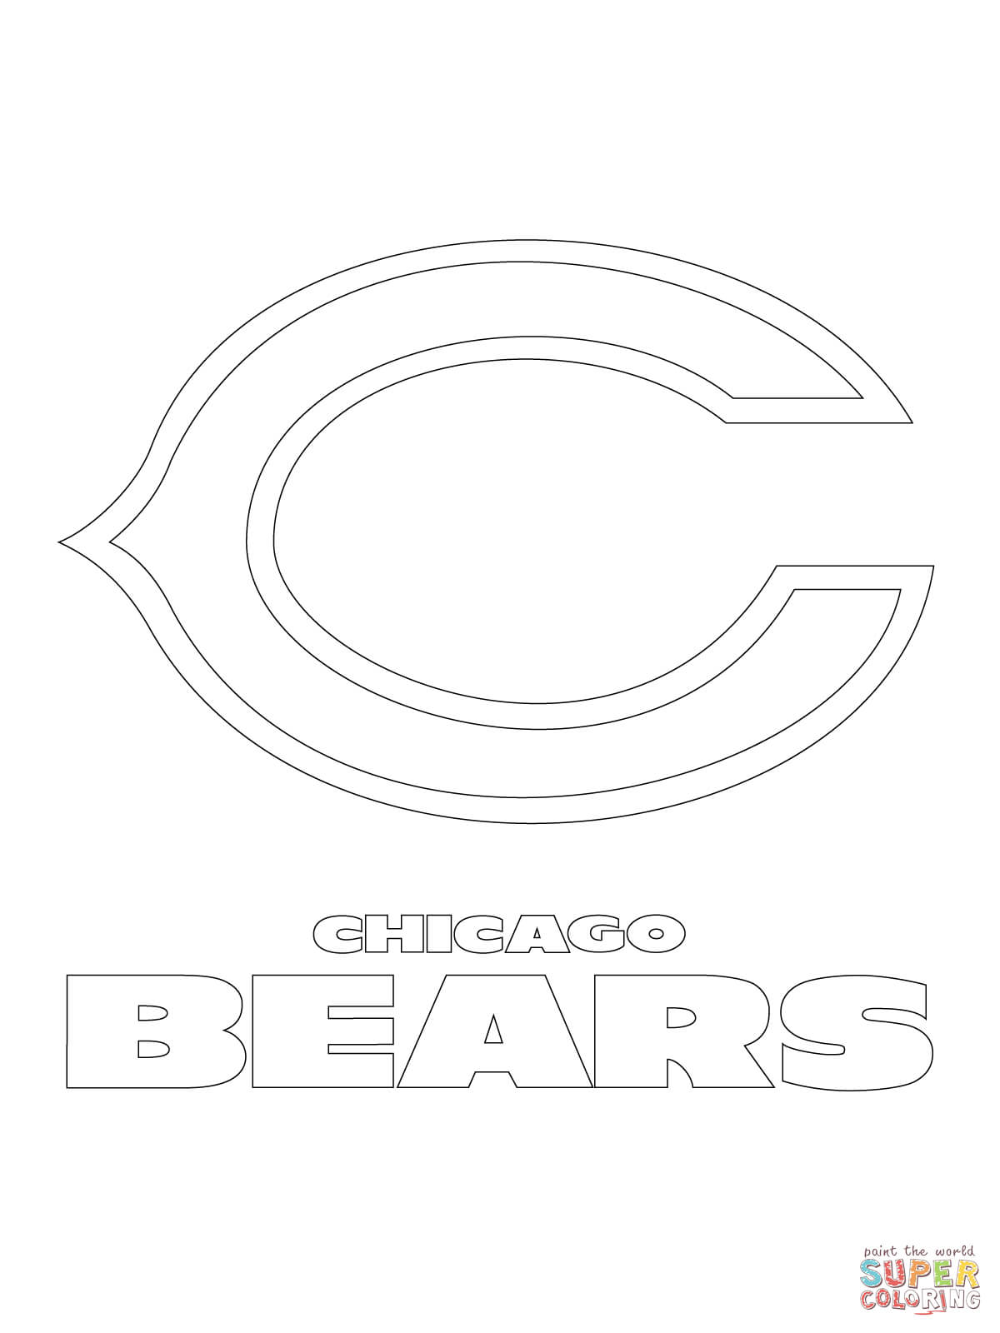 Chicago Bears Logo Coloring Page Free Printable Coloring Pages Coloring Home In 2020 Bear Coloring Pages Chicago Bears Logo Sports Coloring Pages